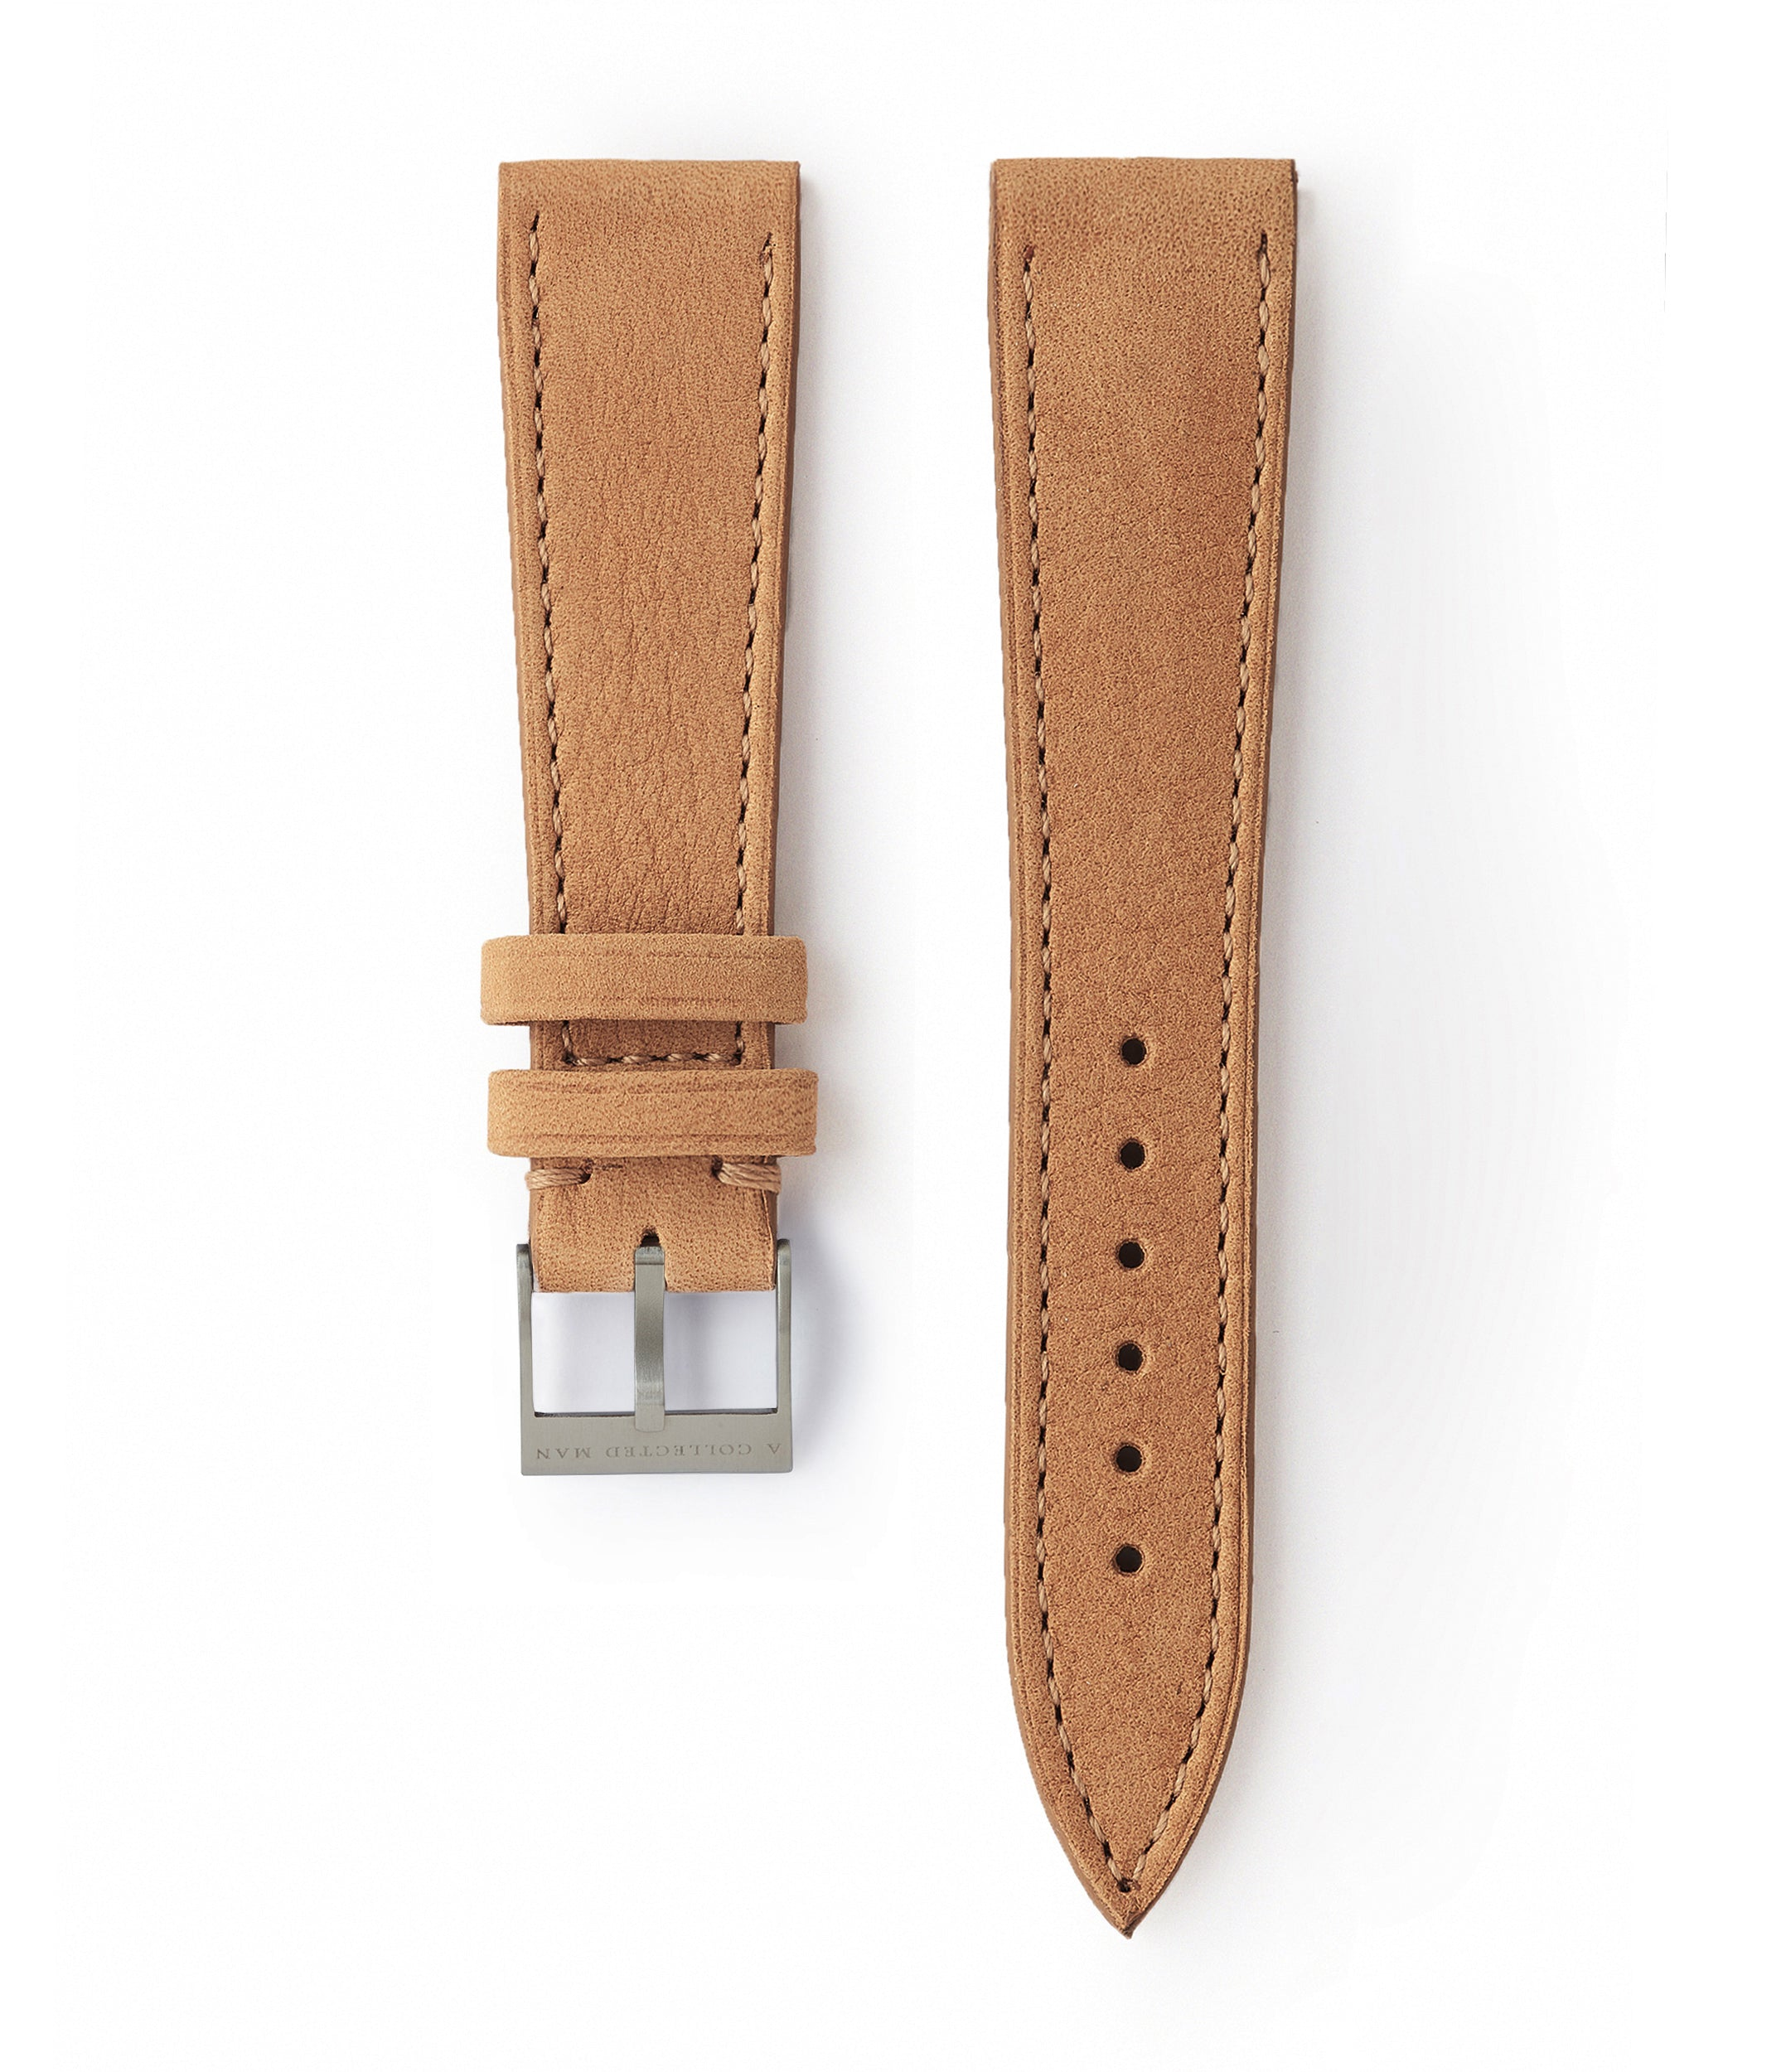 buy light tan nubuck leather watch strap Carcassonne Molequin for sale order online at A Collected Man London